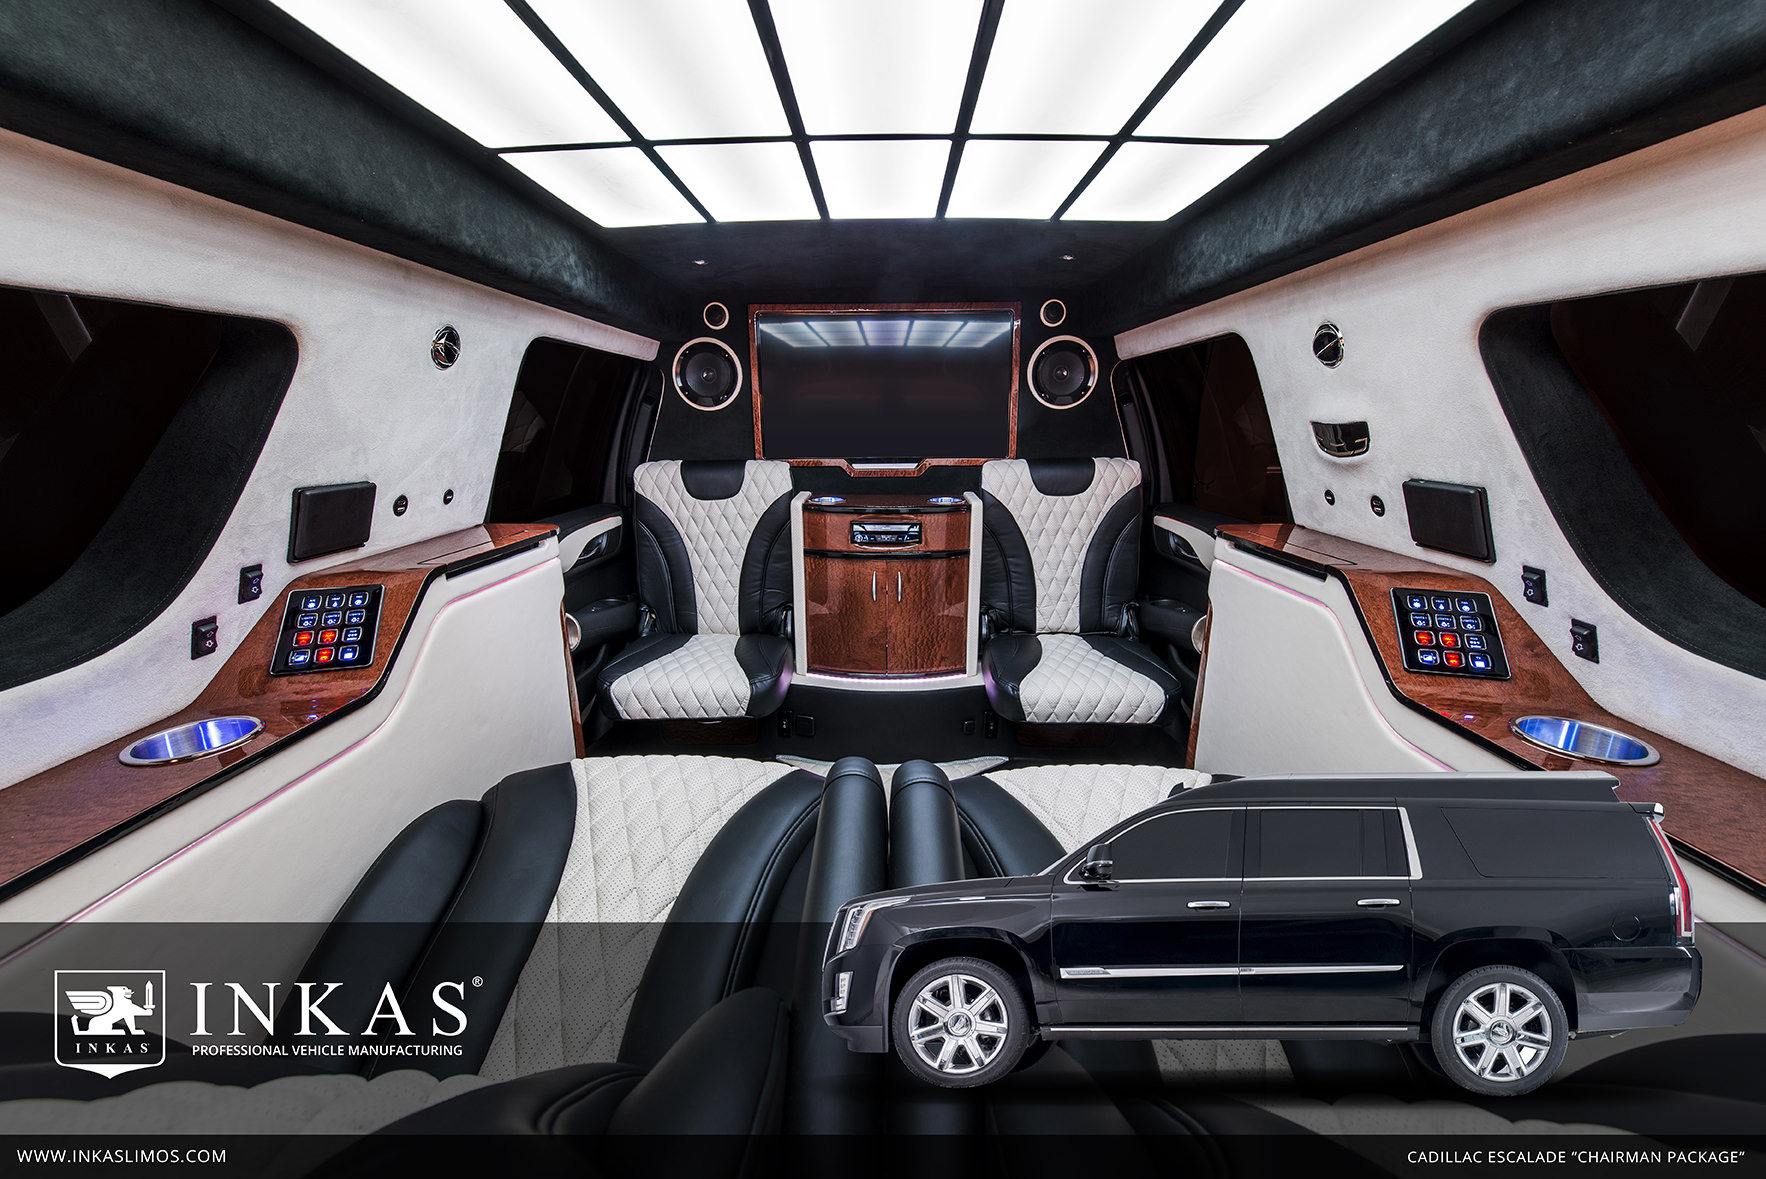 Inkas Cadillac Escalade Chairman Package Is Now Available Inkas